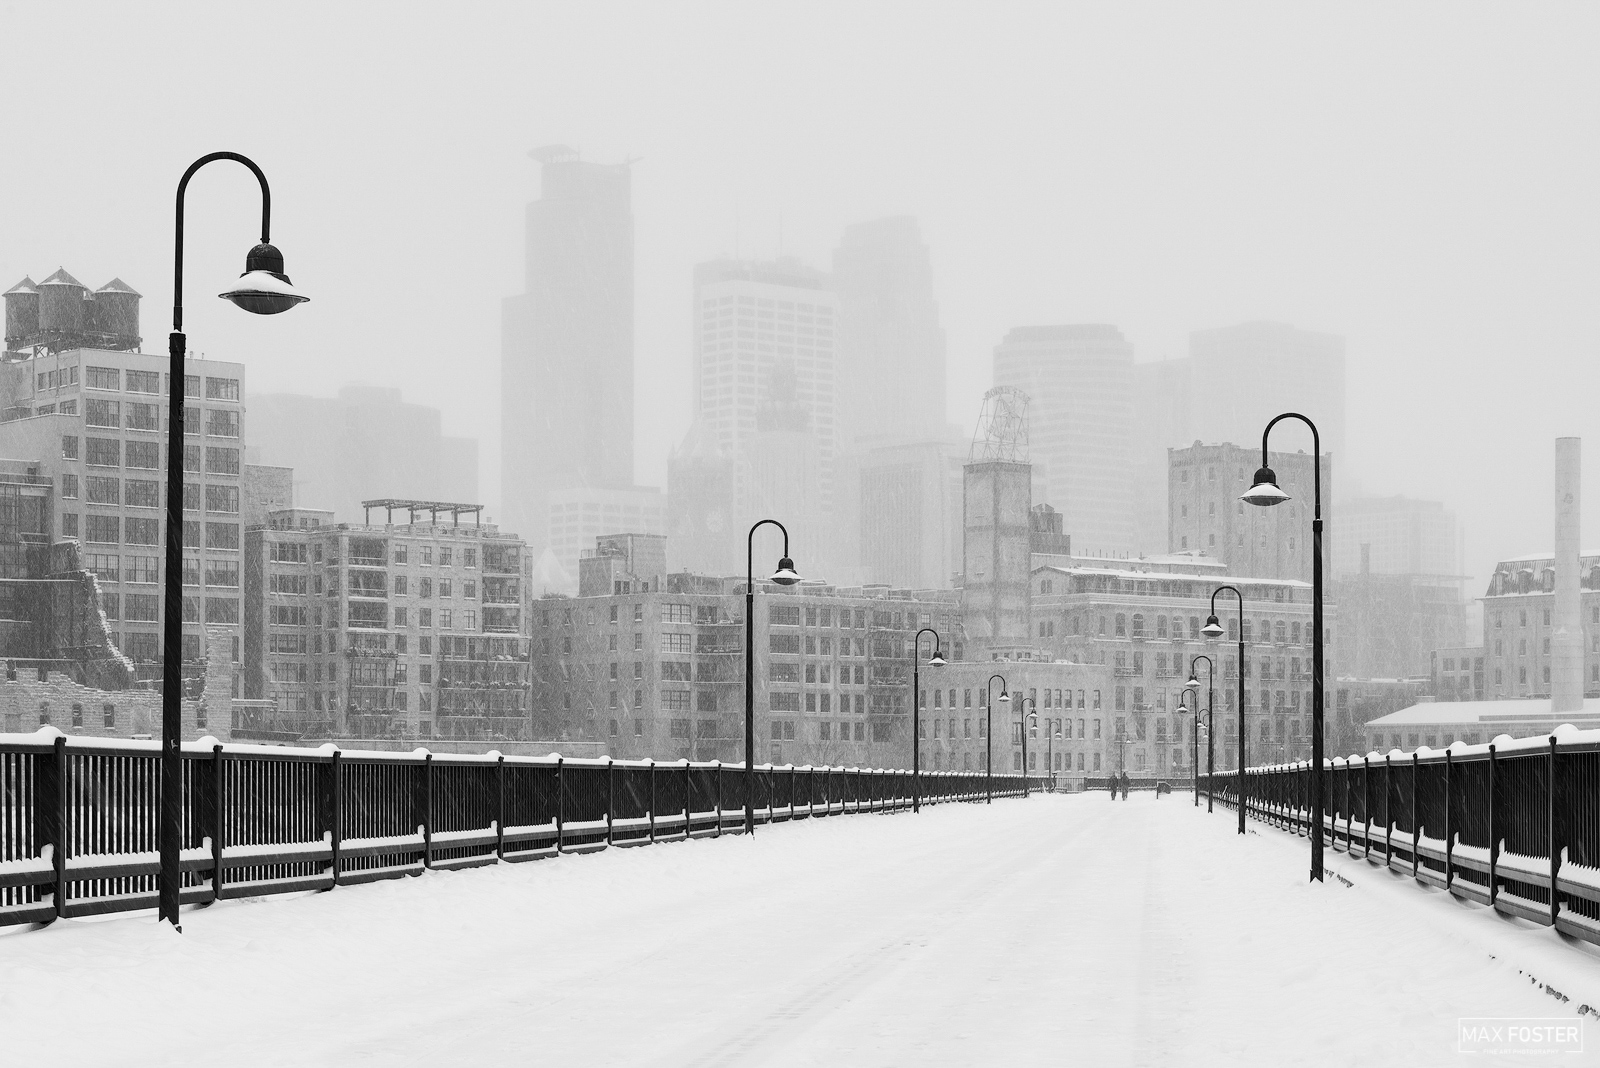 Fine Art Limited Edition of 50 The black and white or monochrome version of Snowy Stone Arch, taken of the Stone Arch Bridge...